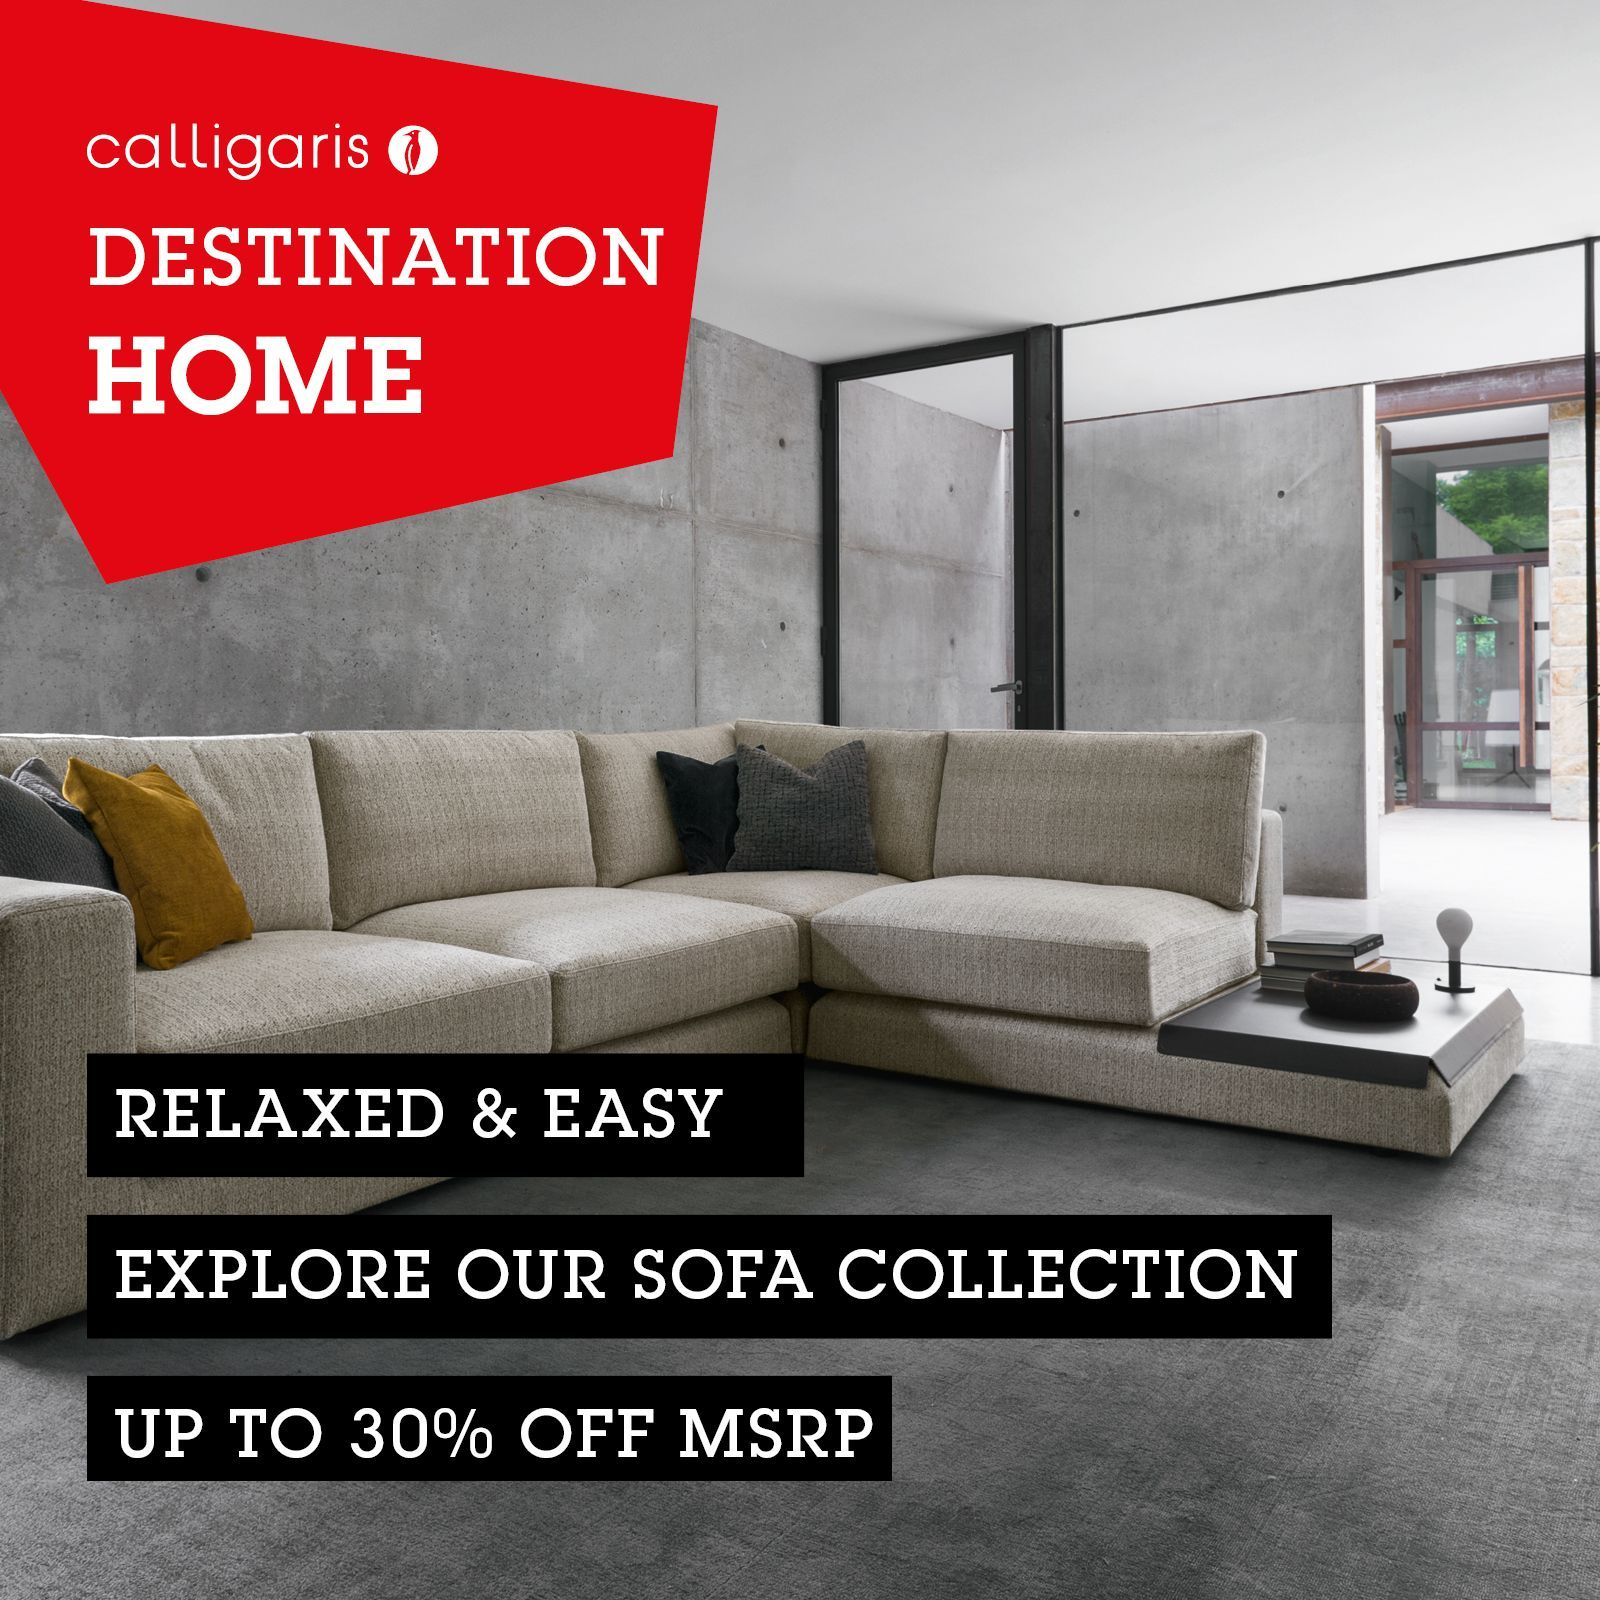 Calligaris Annual Sofa Sale Save Up To 30 Ending On Memorial